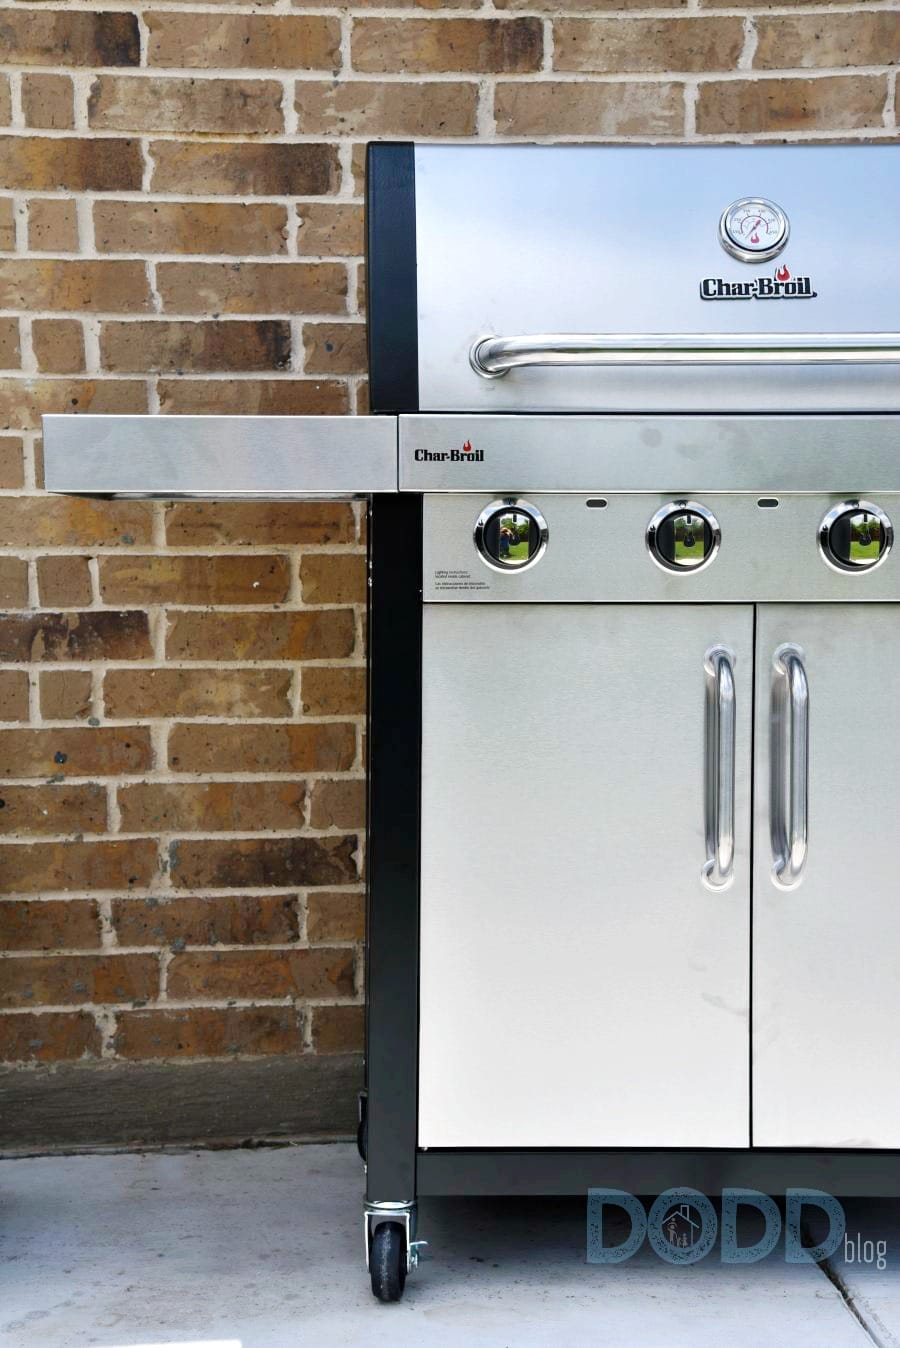 Infrared Grilling Tips and Tricks with Char-Broil TRU-Infrared Grills